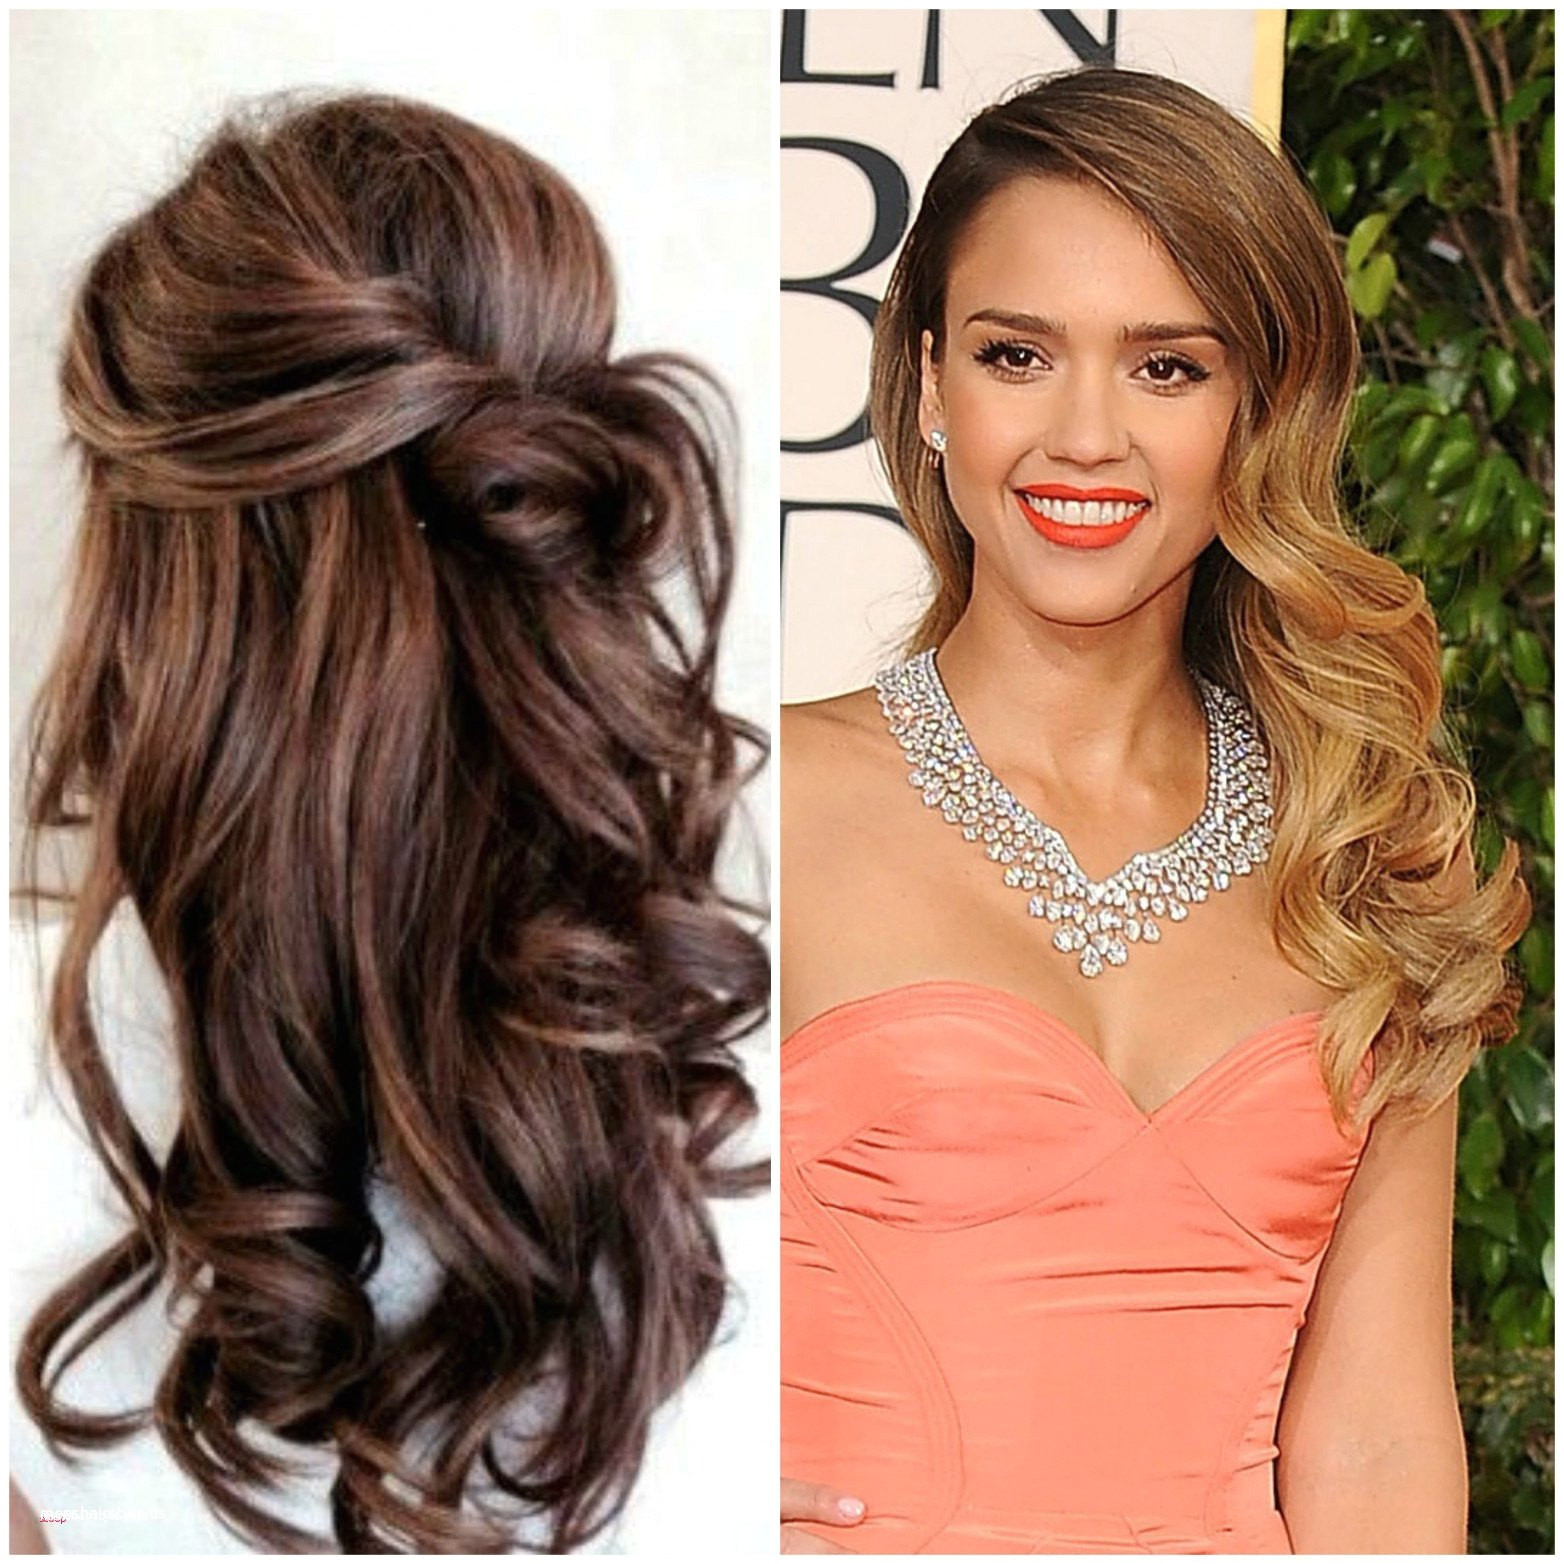 Haircut for Long Hair and Round Face Inspirational Haircut for Round Fat Face Girl